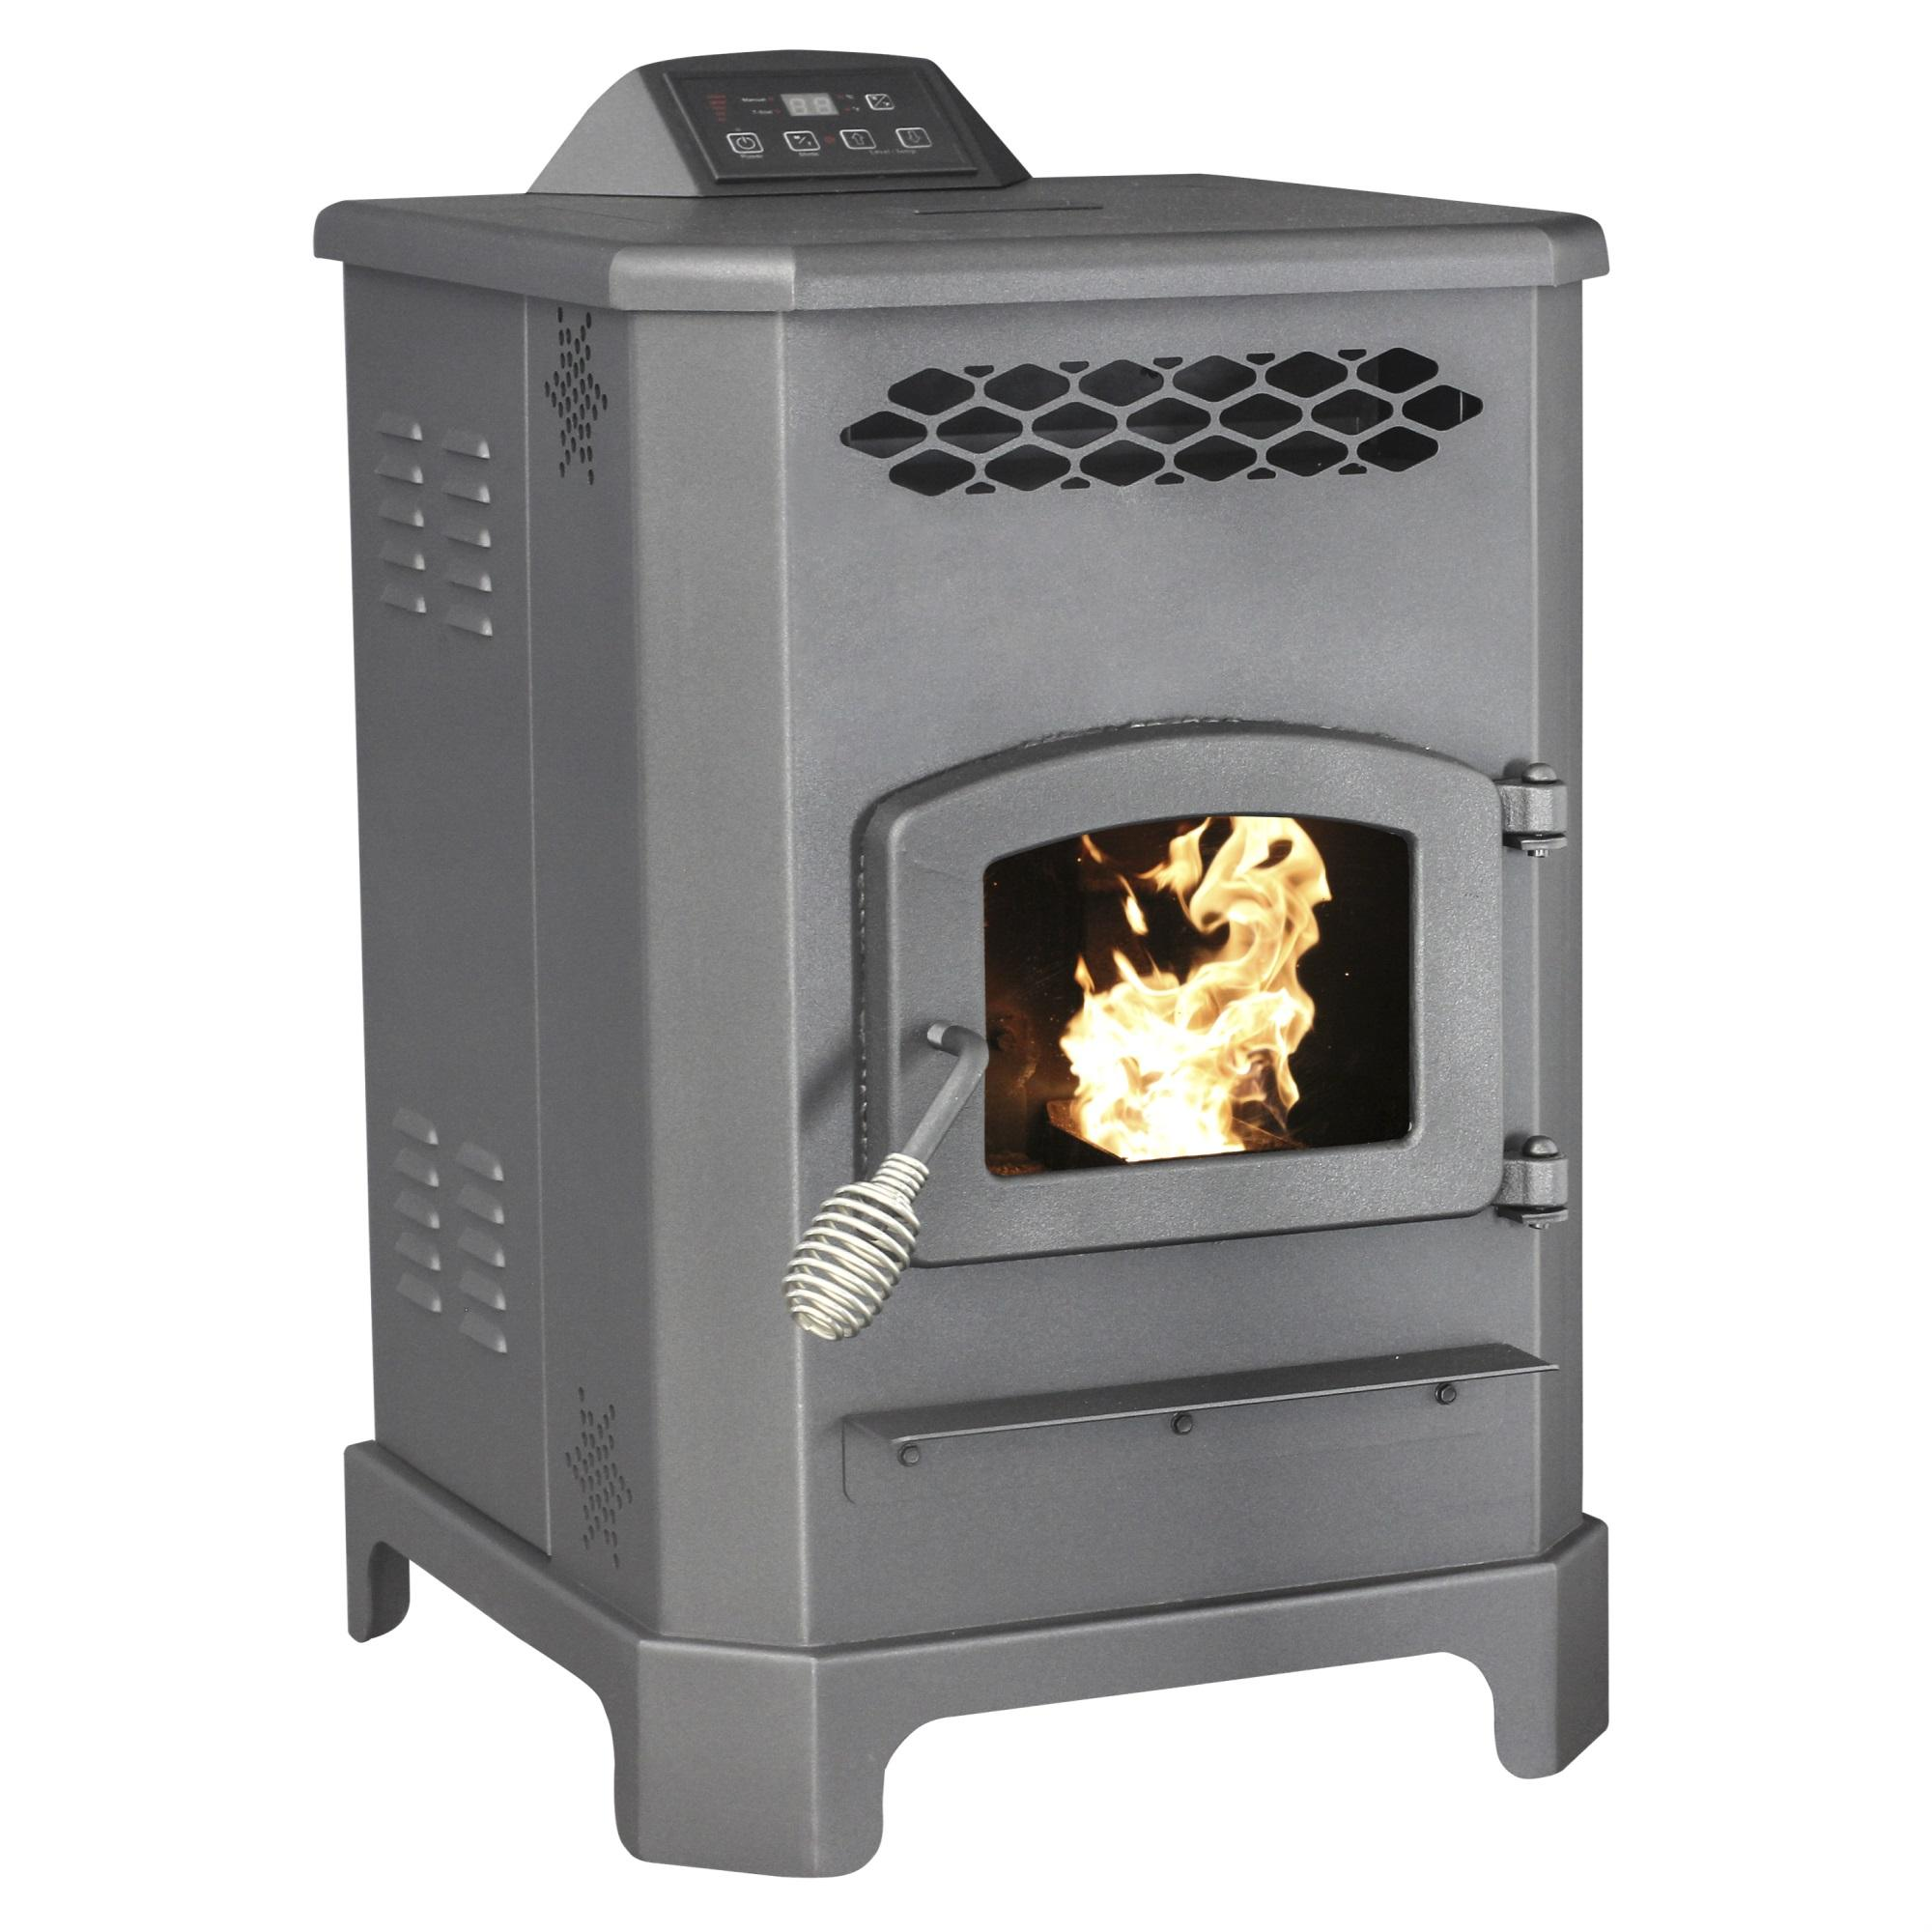 2200 Sq.Ft. King Mini Pellet Stove with 20 lb Hopper and Remote